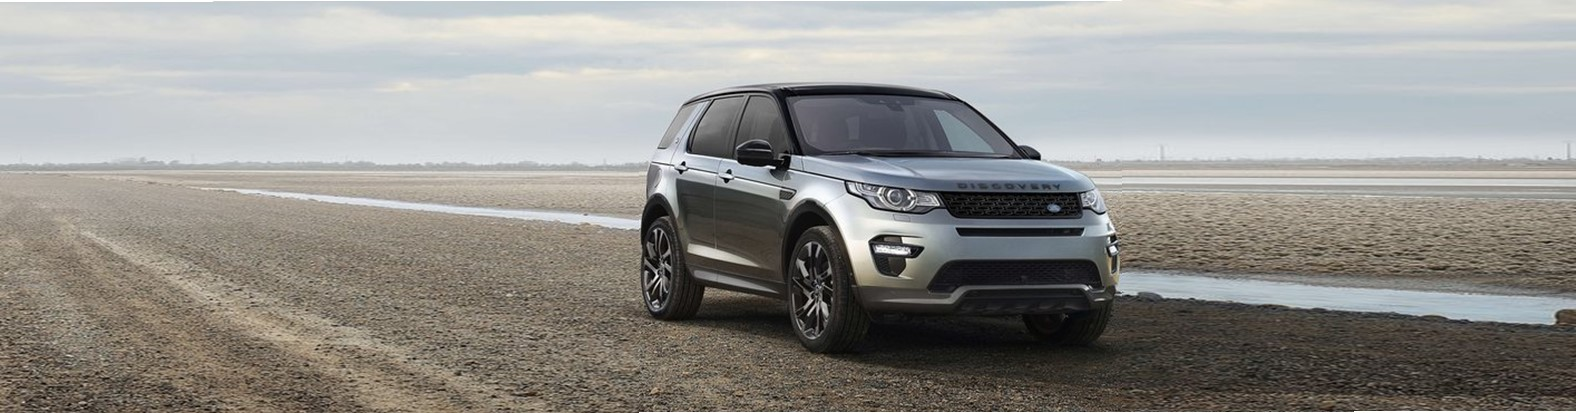 land-rover-discovery-sport_homeslide